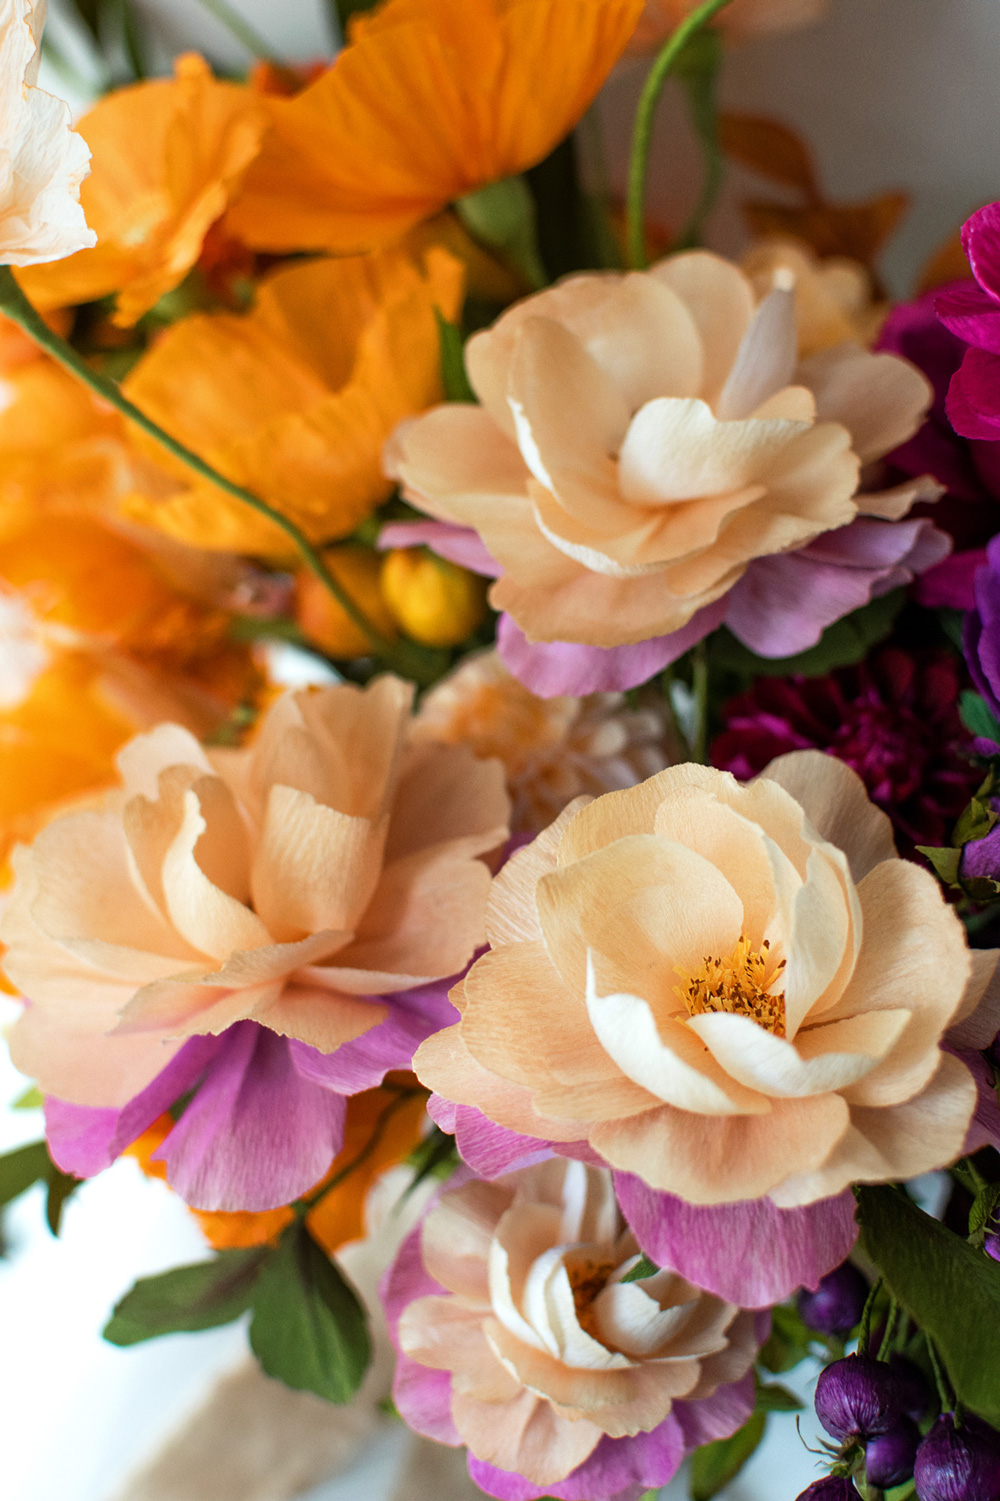 Orange,-Pink,-Burgundy-Paper-Flower-Bouquet-by-Crafted-to-Bloom-(Distant-drums) copy 2.jpg